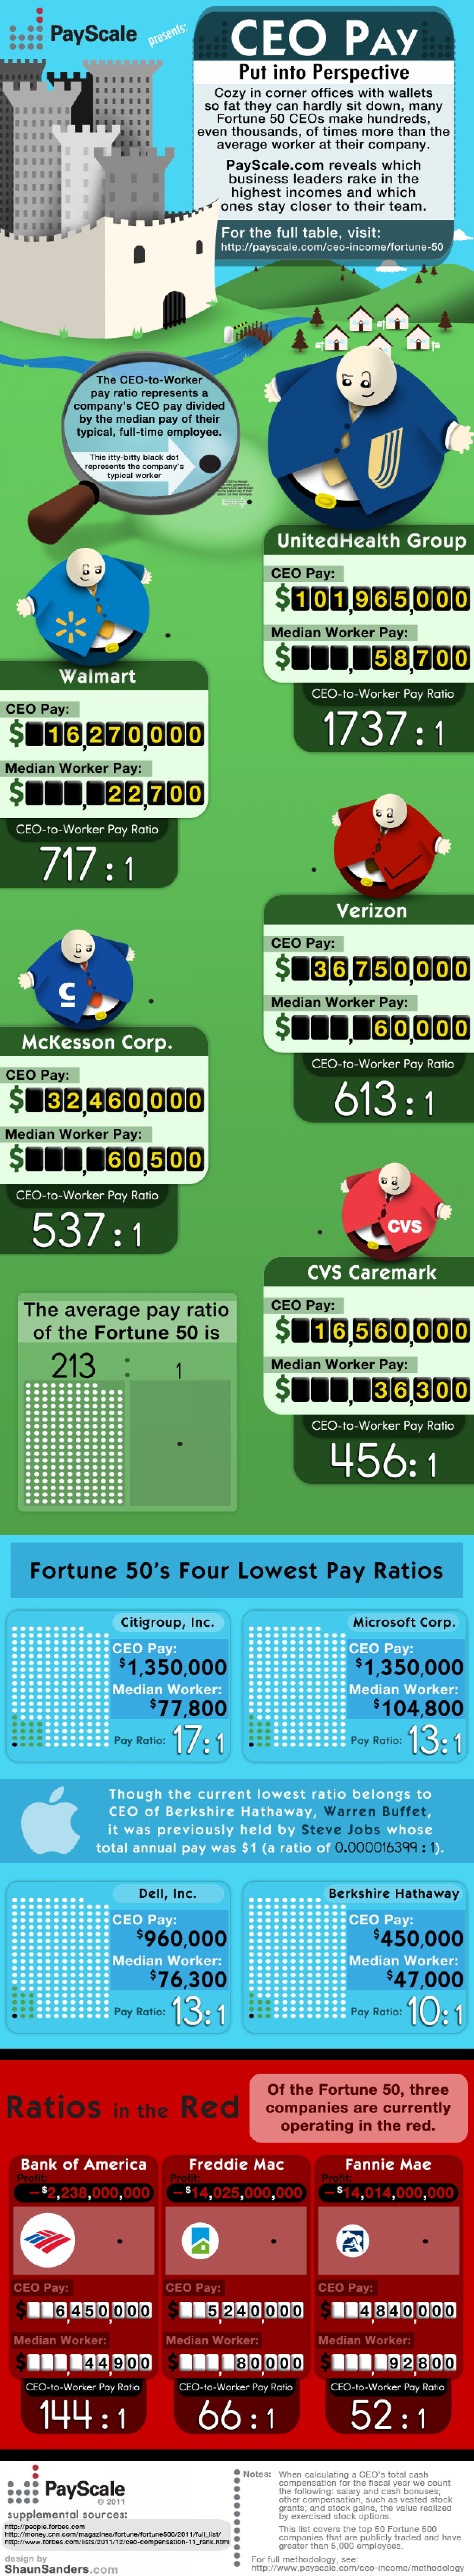 14. Fortune 50 CEO Income Compared to Average Worker at Company